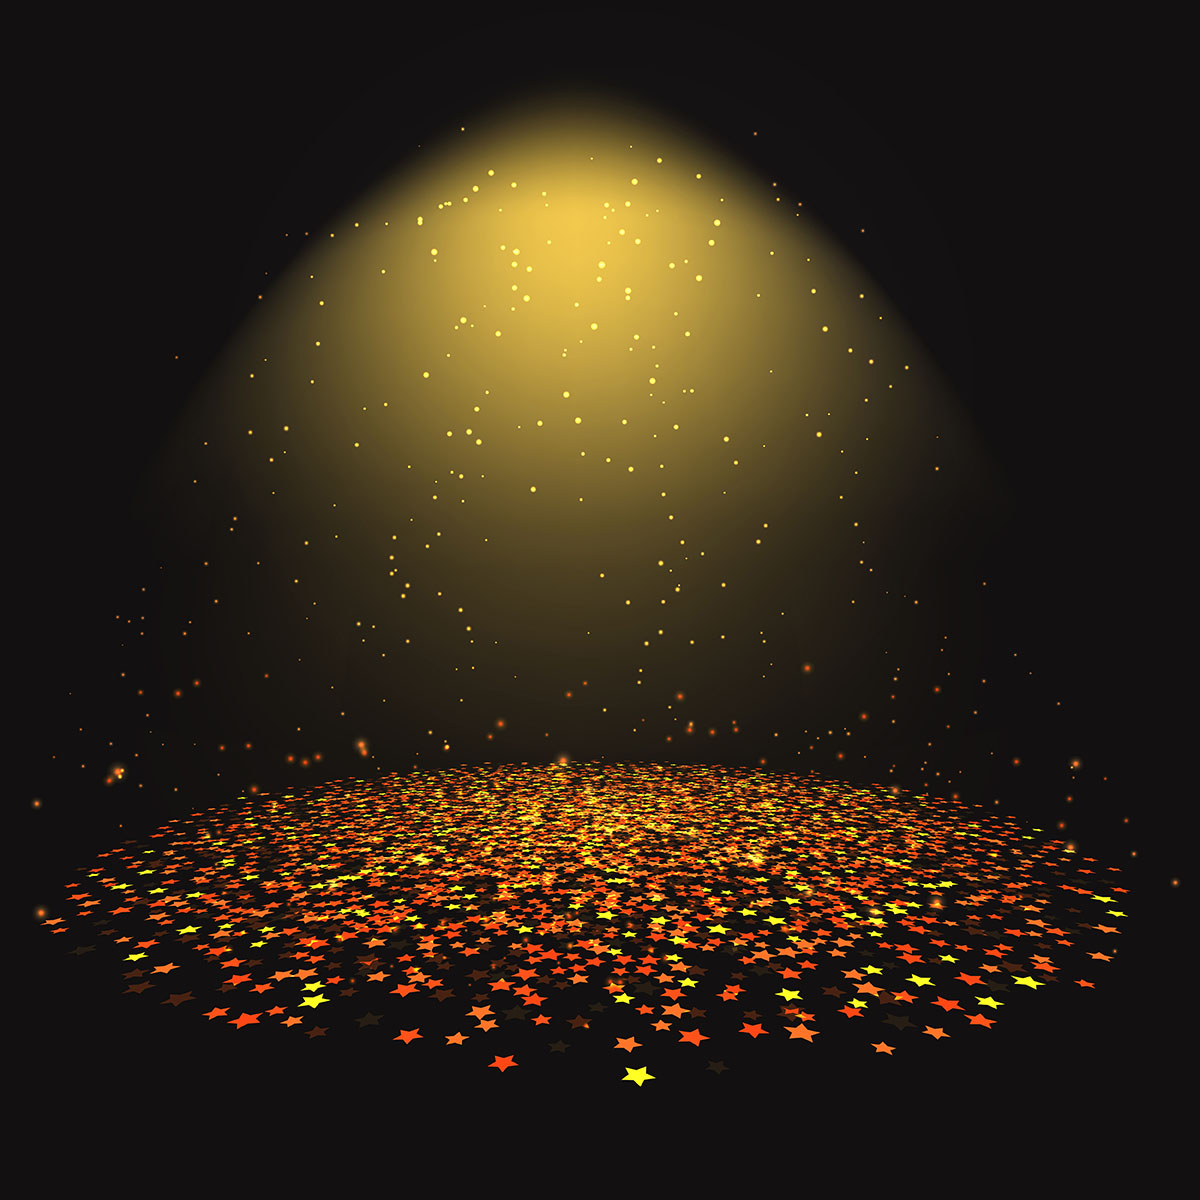 Gold Star Confetti Under A Spotlight Download Free